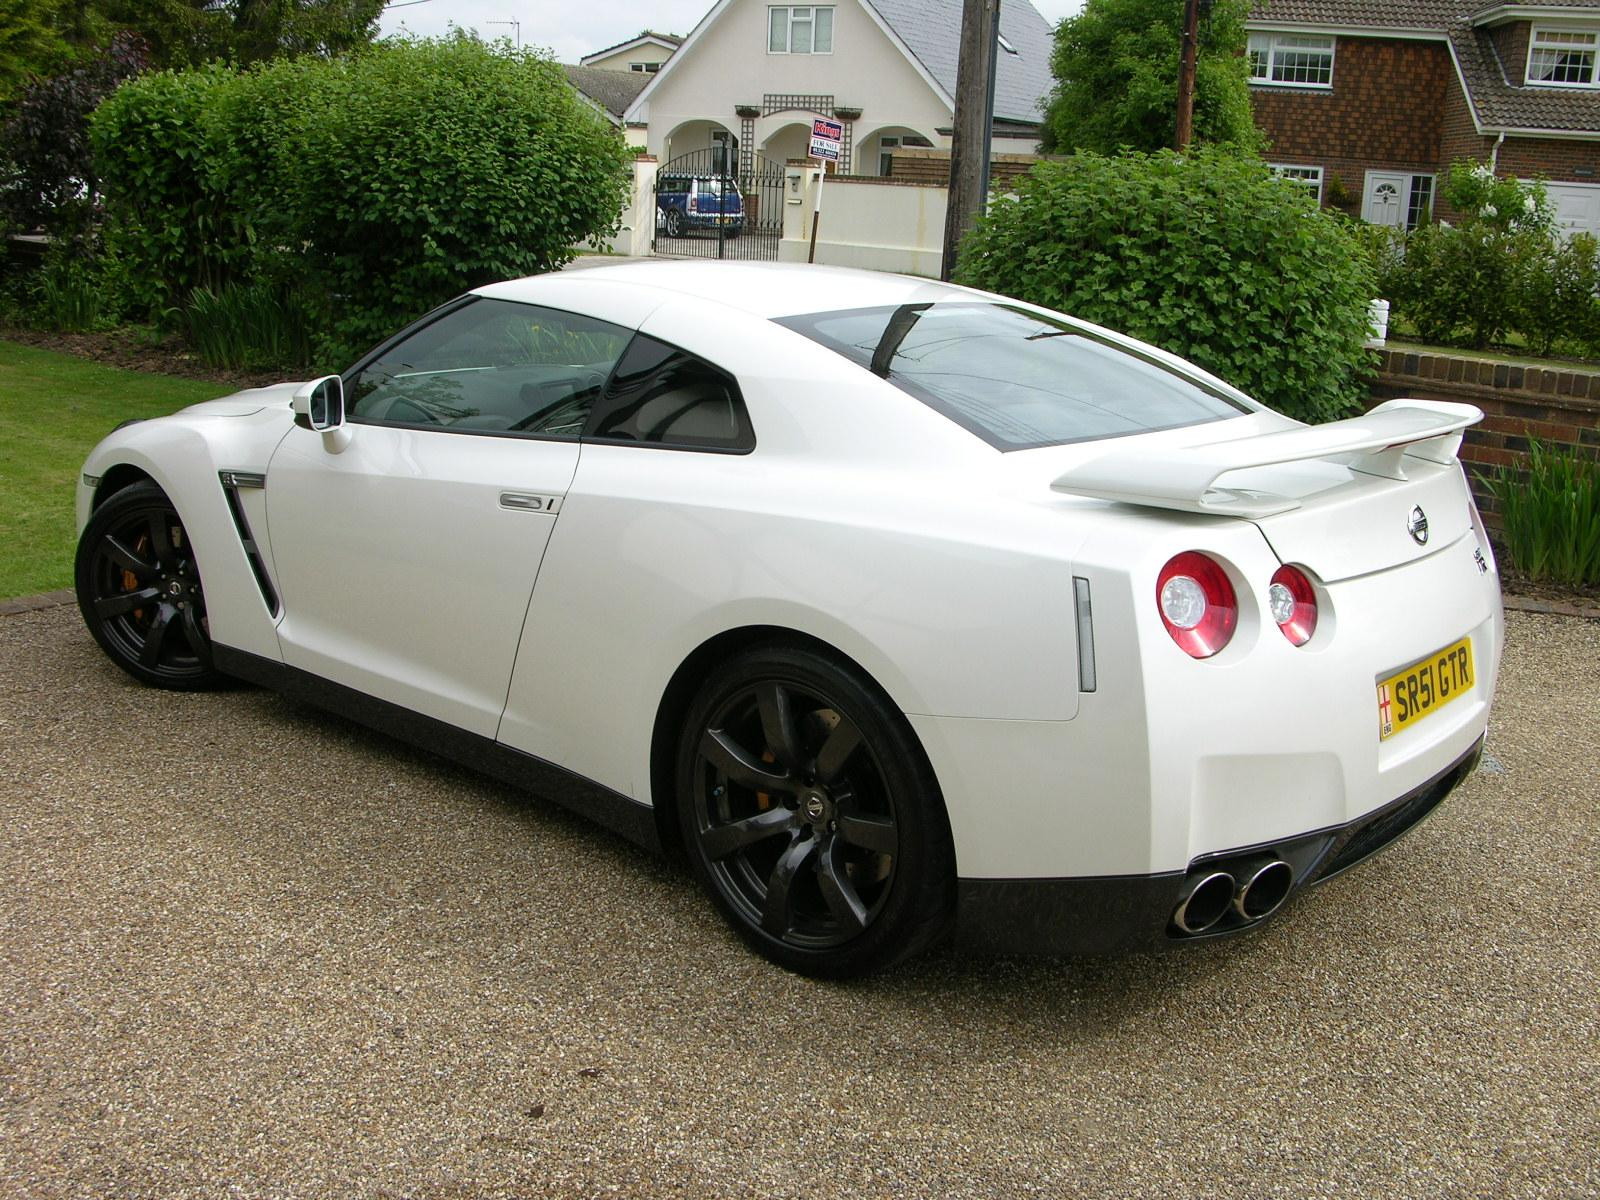 file:2009 nissan gt-r black edition - flickr - the car spy (1)